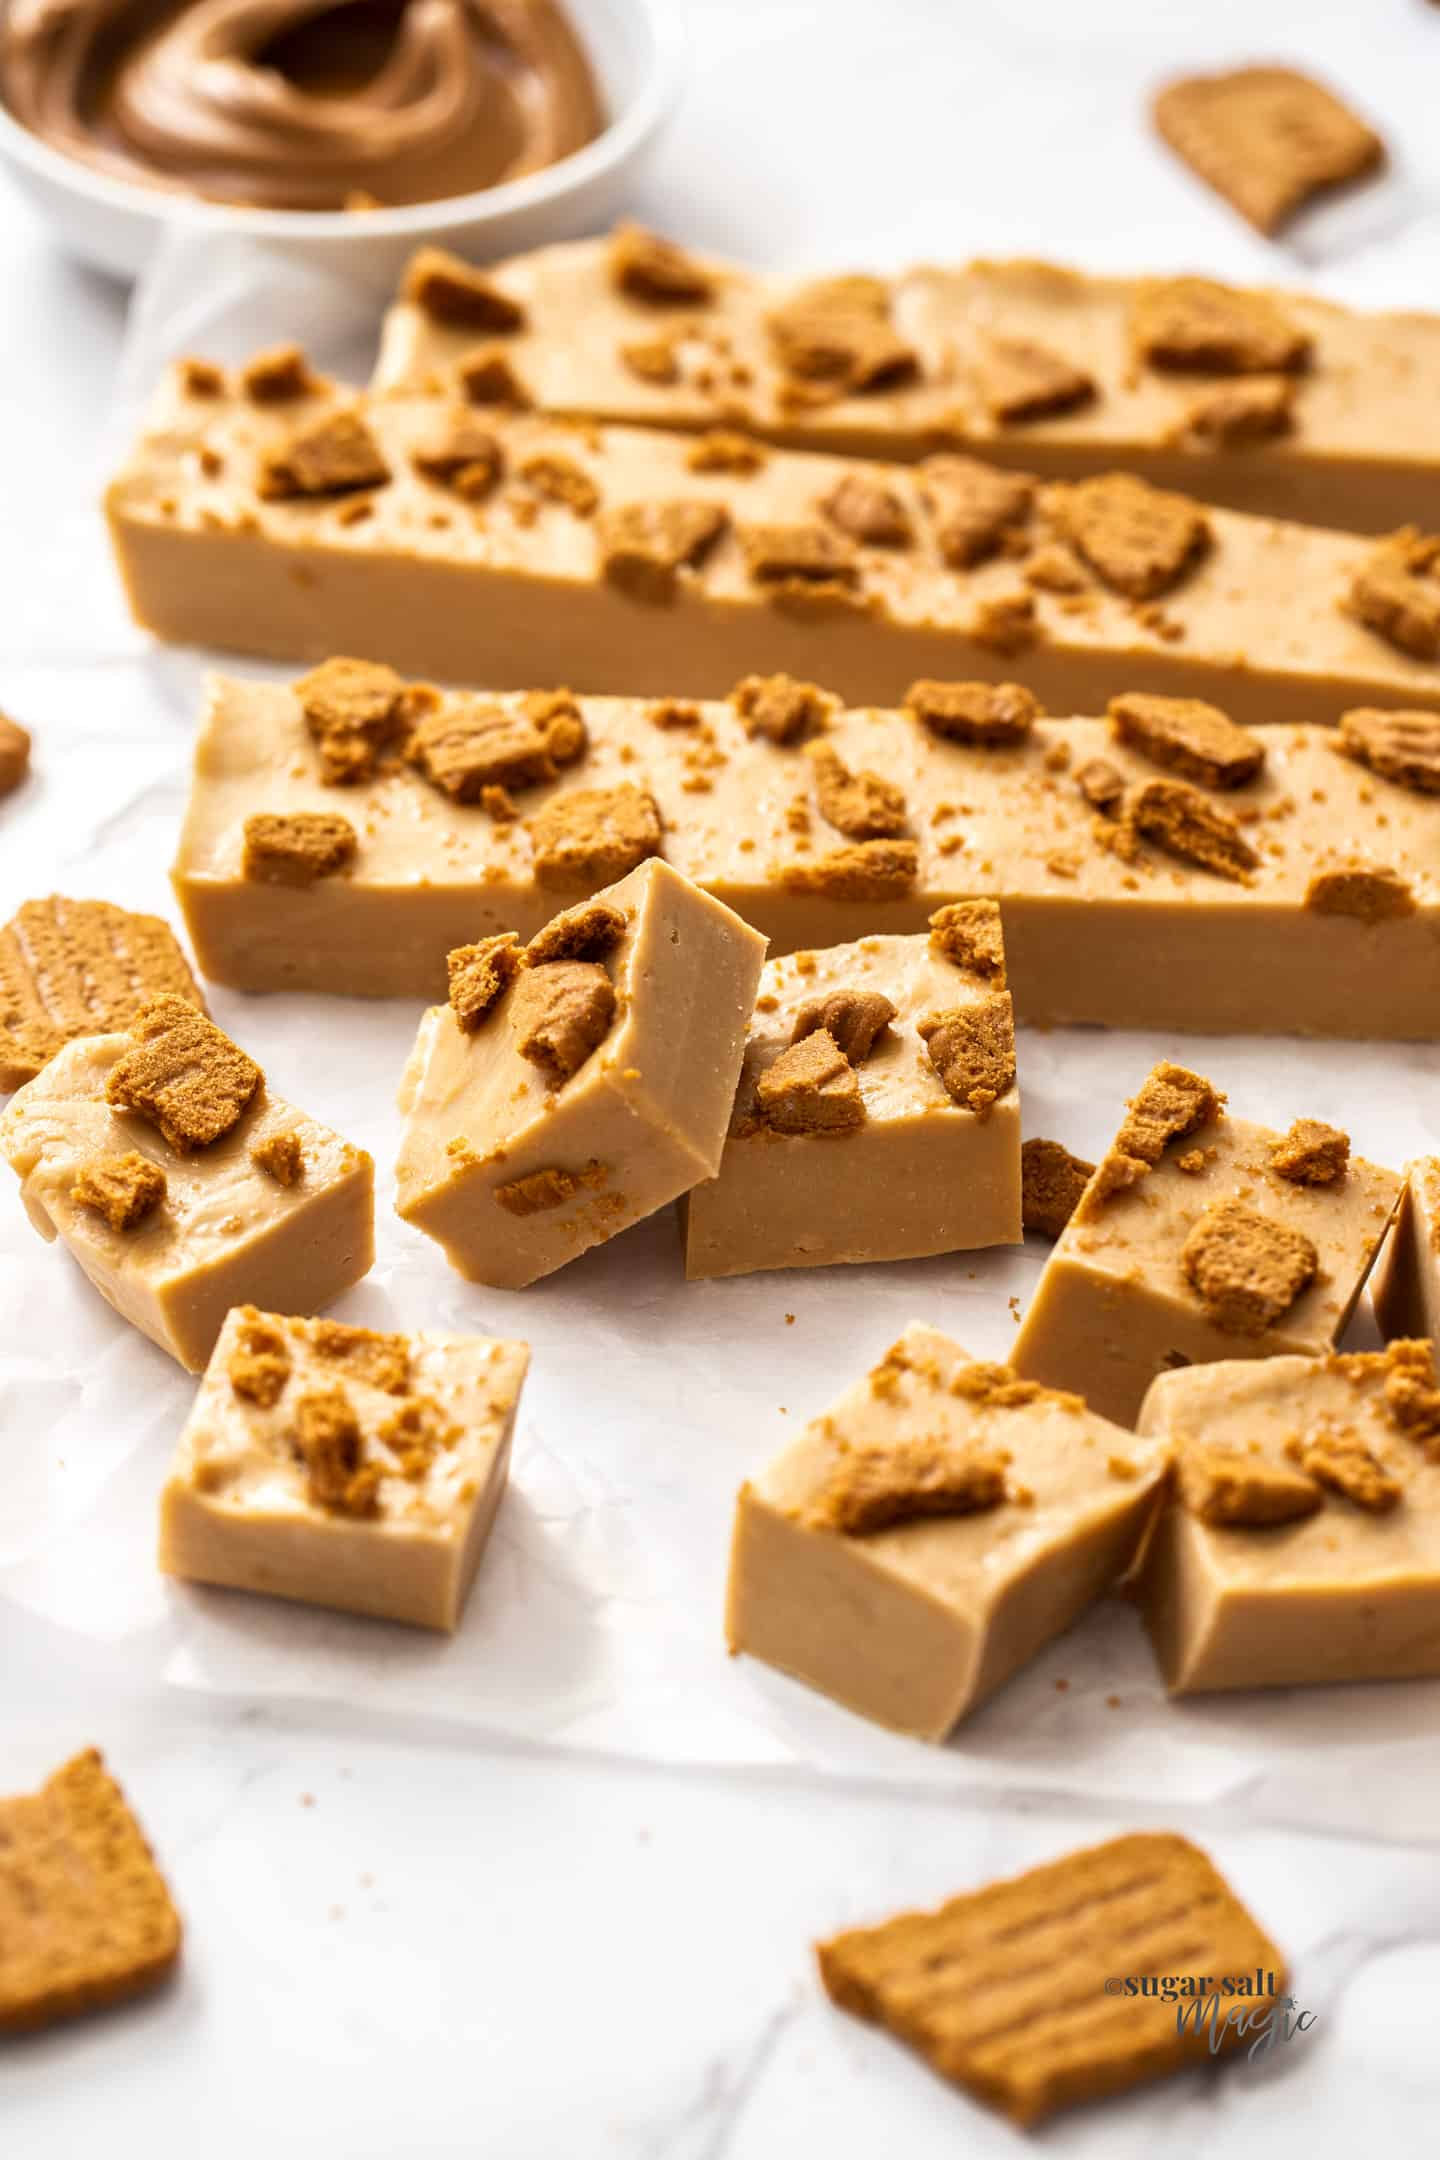 A batch of biscoff fudge, some cut into squares, some in sticks.